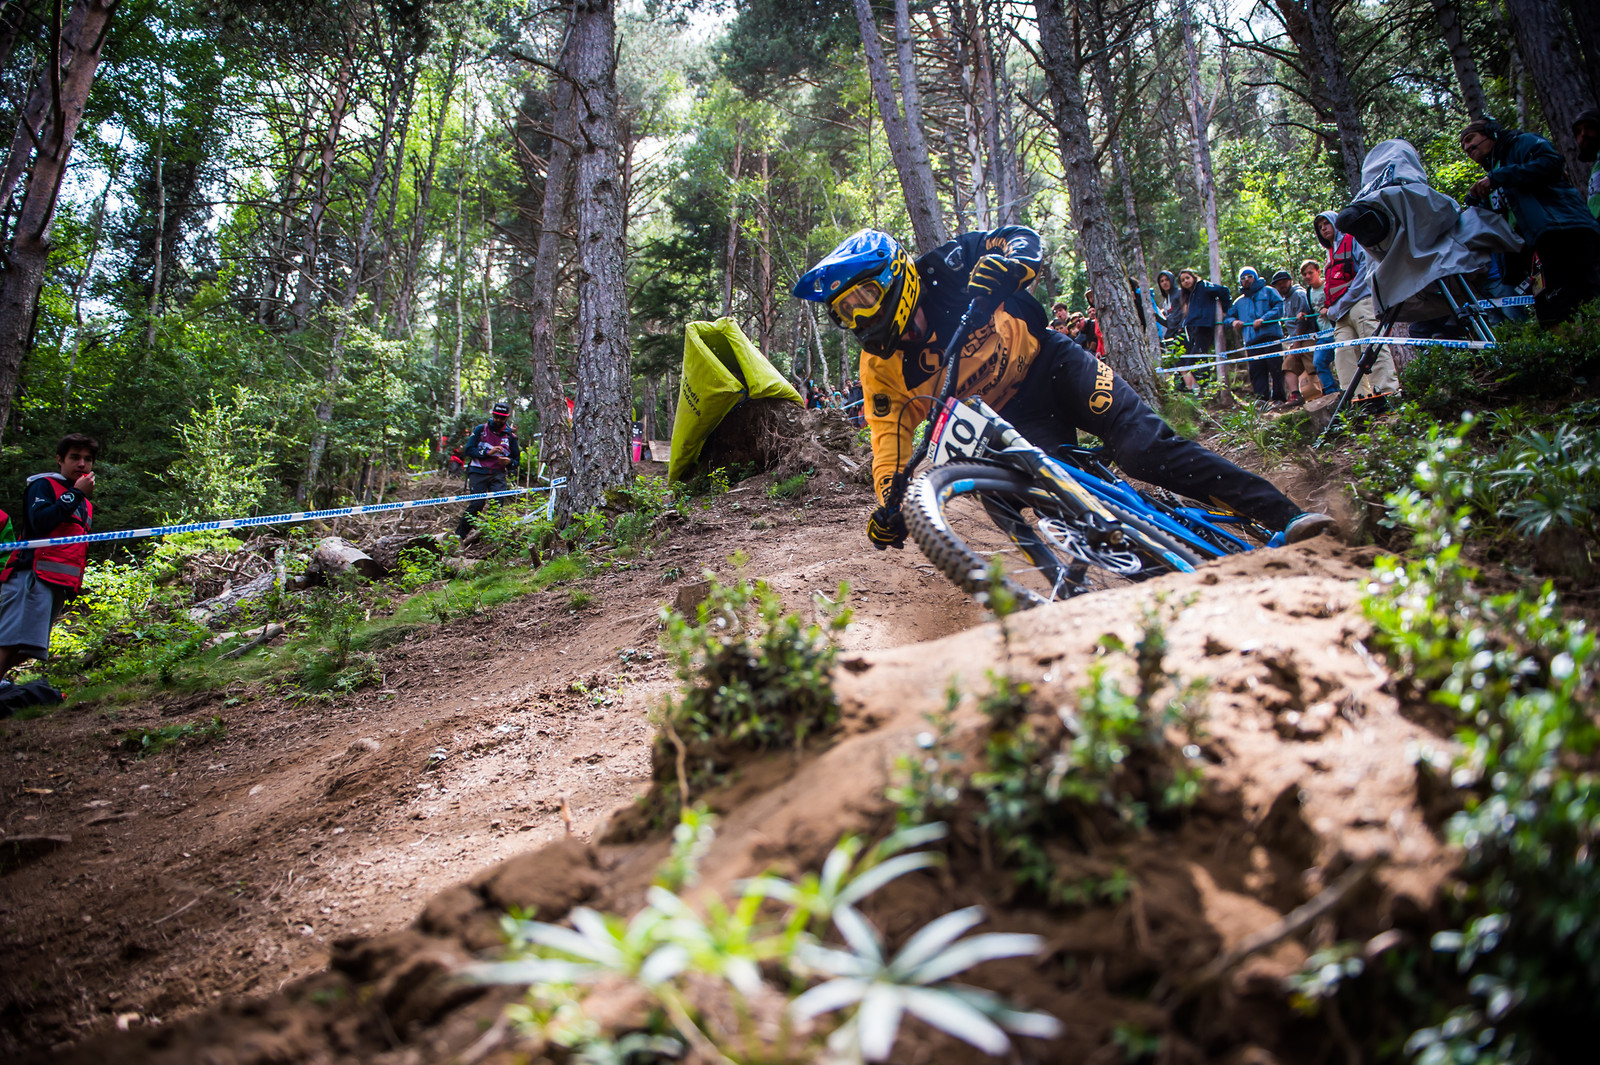 Phil Atwill Finals - iceman2058 - Mountain Biking Pictures - Vital MTB